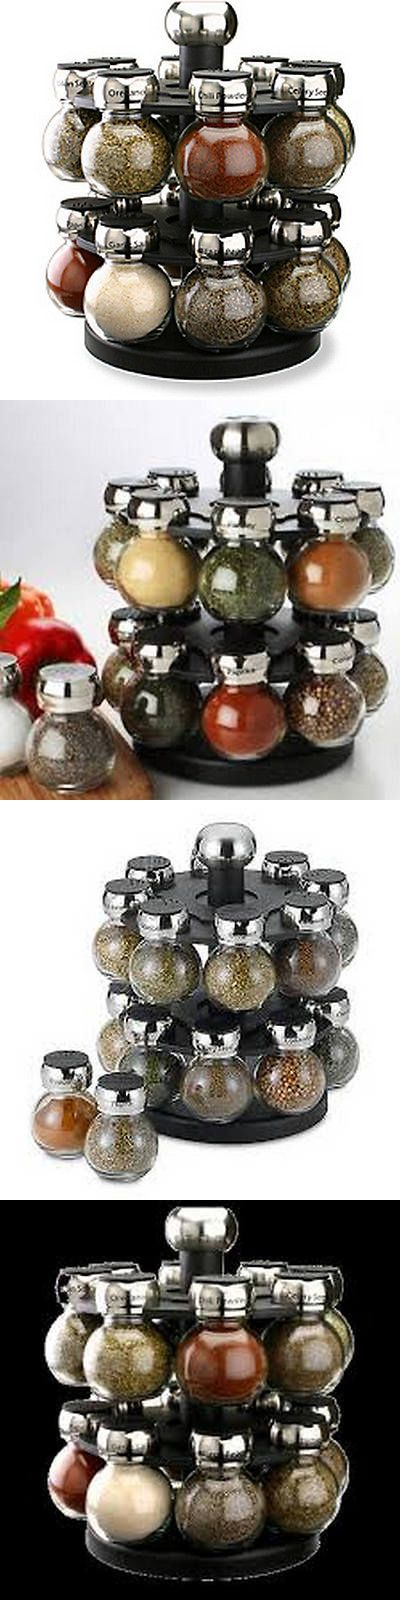 Spice Jars and Racks 20646: Spice Rack And Jars Glass Spices Set Herbs Carousel Kitchen 16 Jars Revolving -> BUY IT NOW ONLY: $49.99 on eBay!